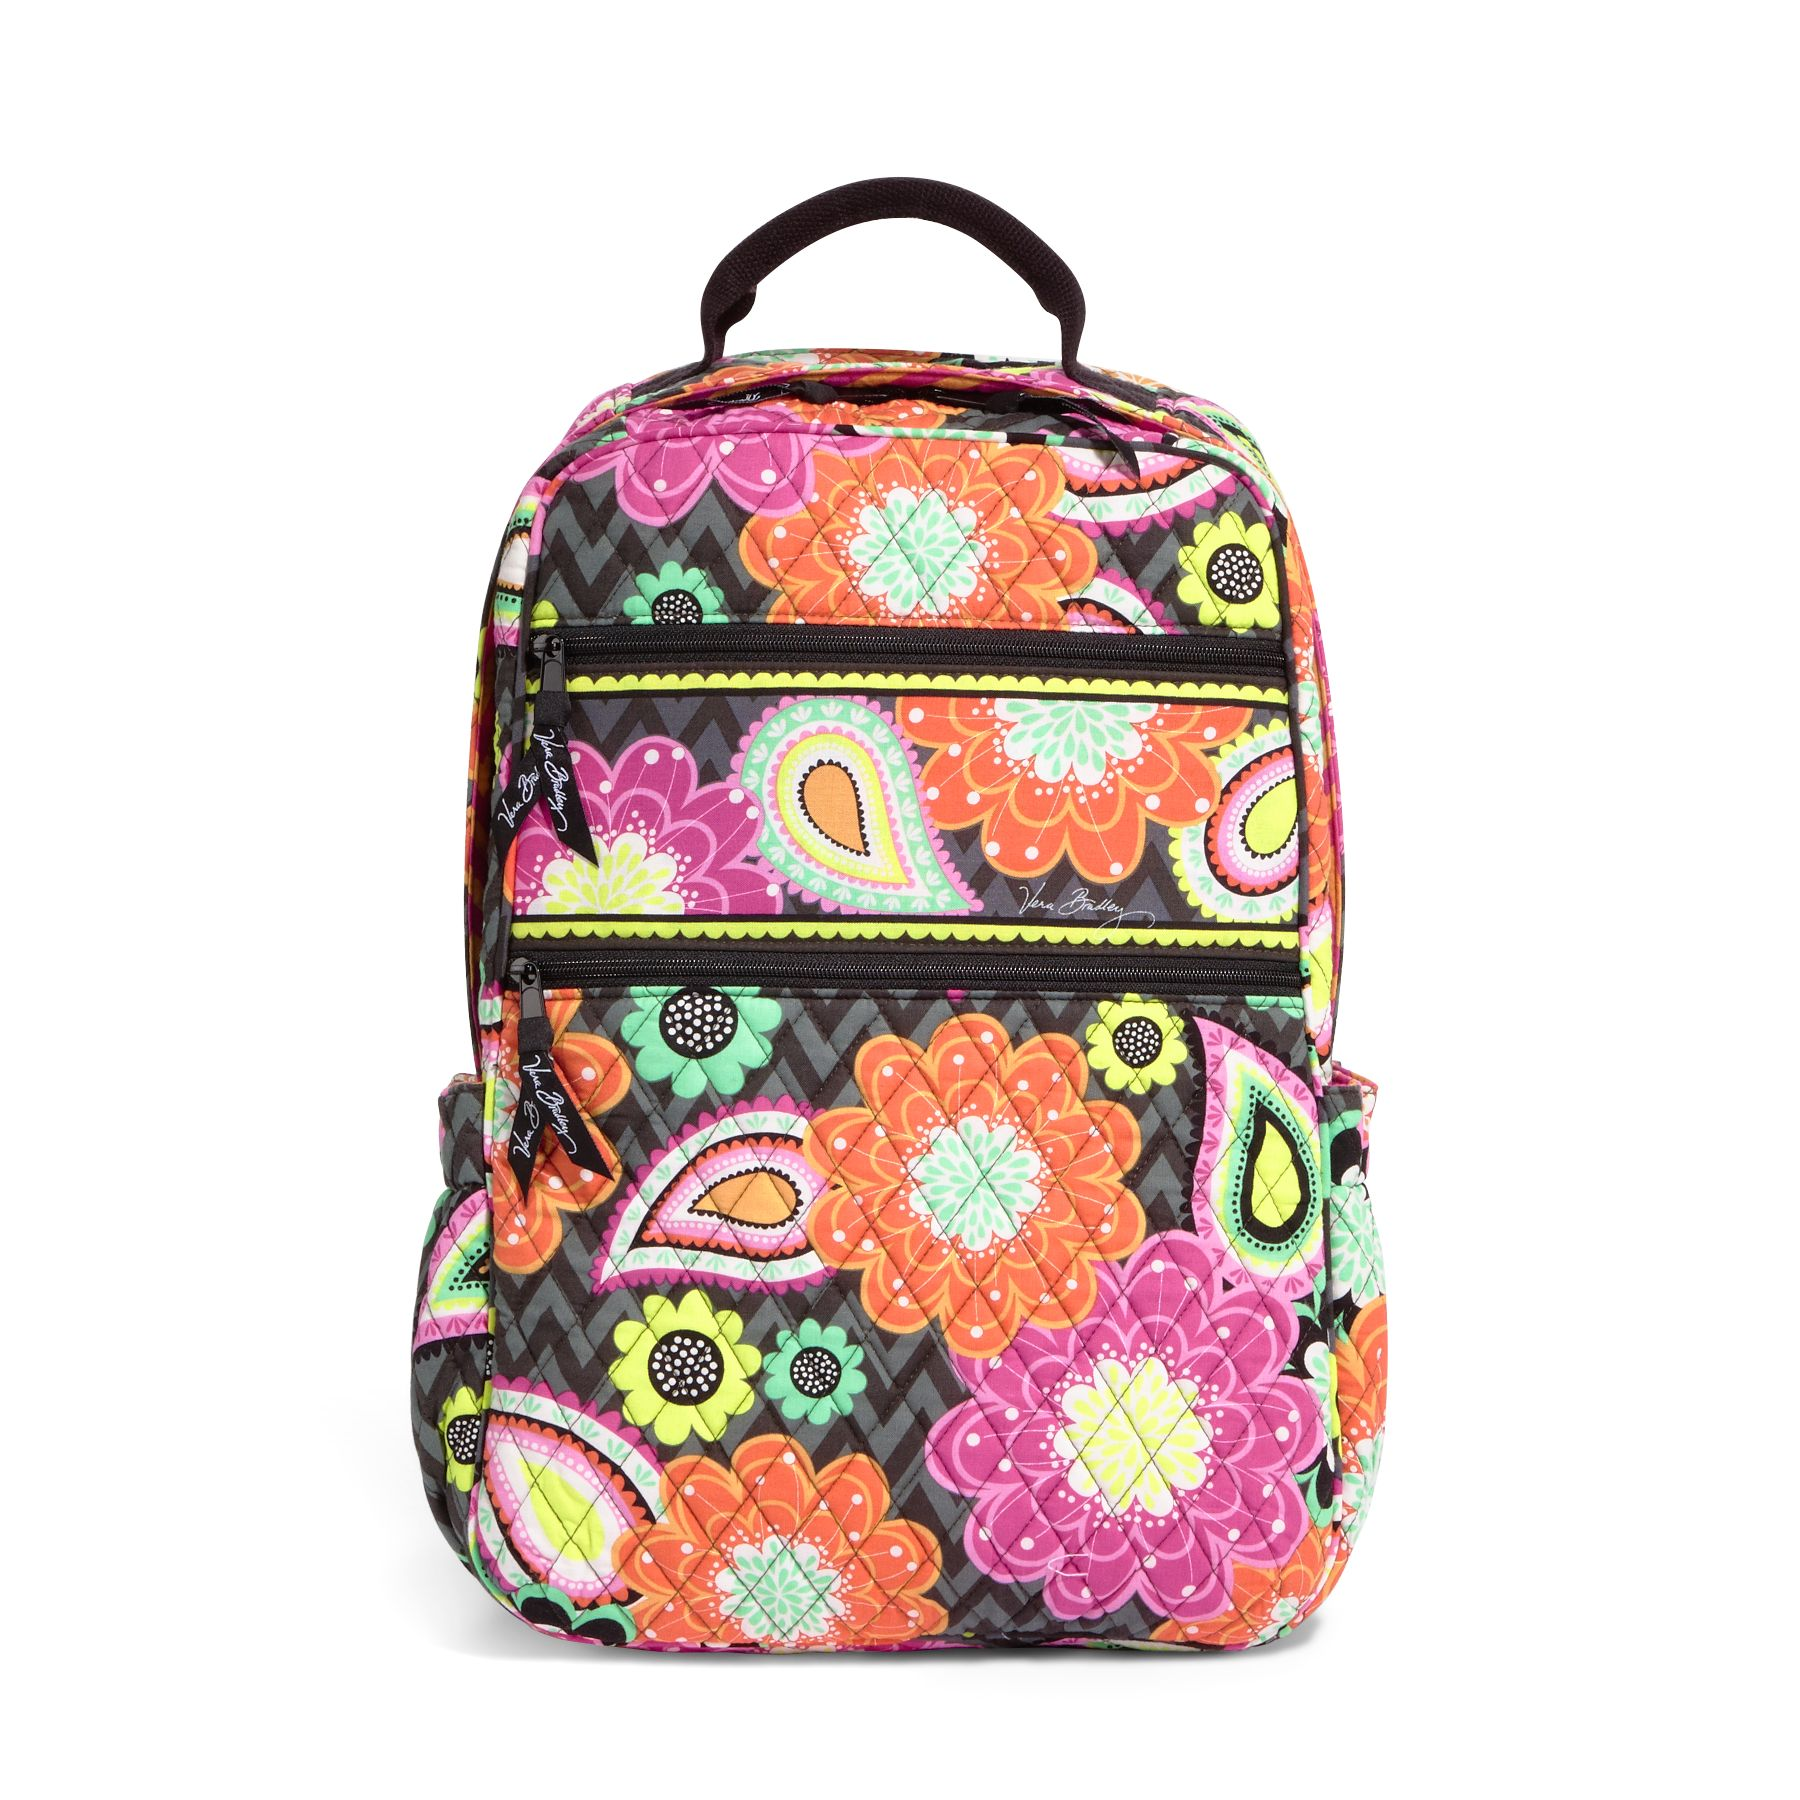 Vera Bradley Tech Backpack in Ziggy Zinnia